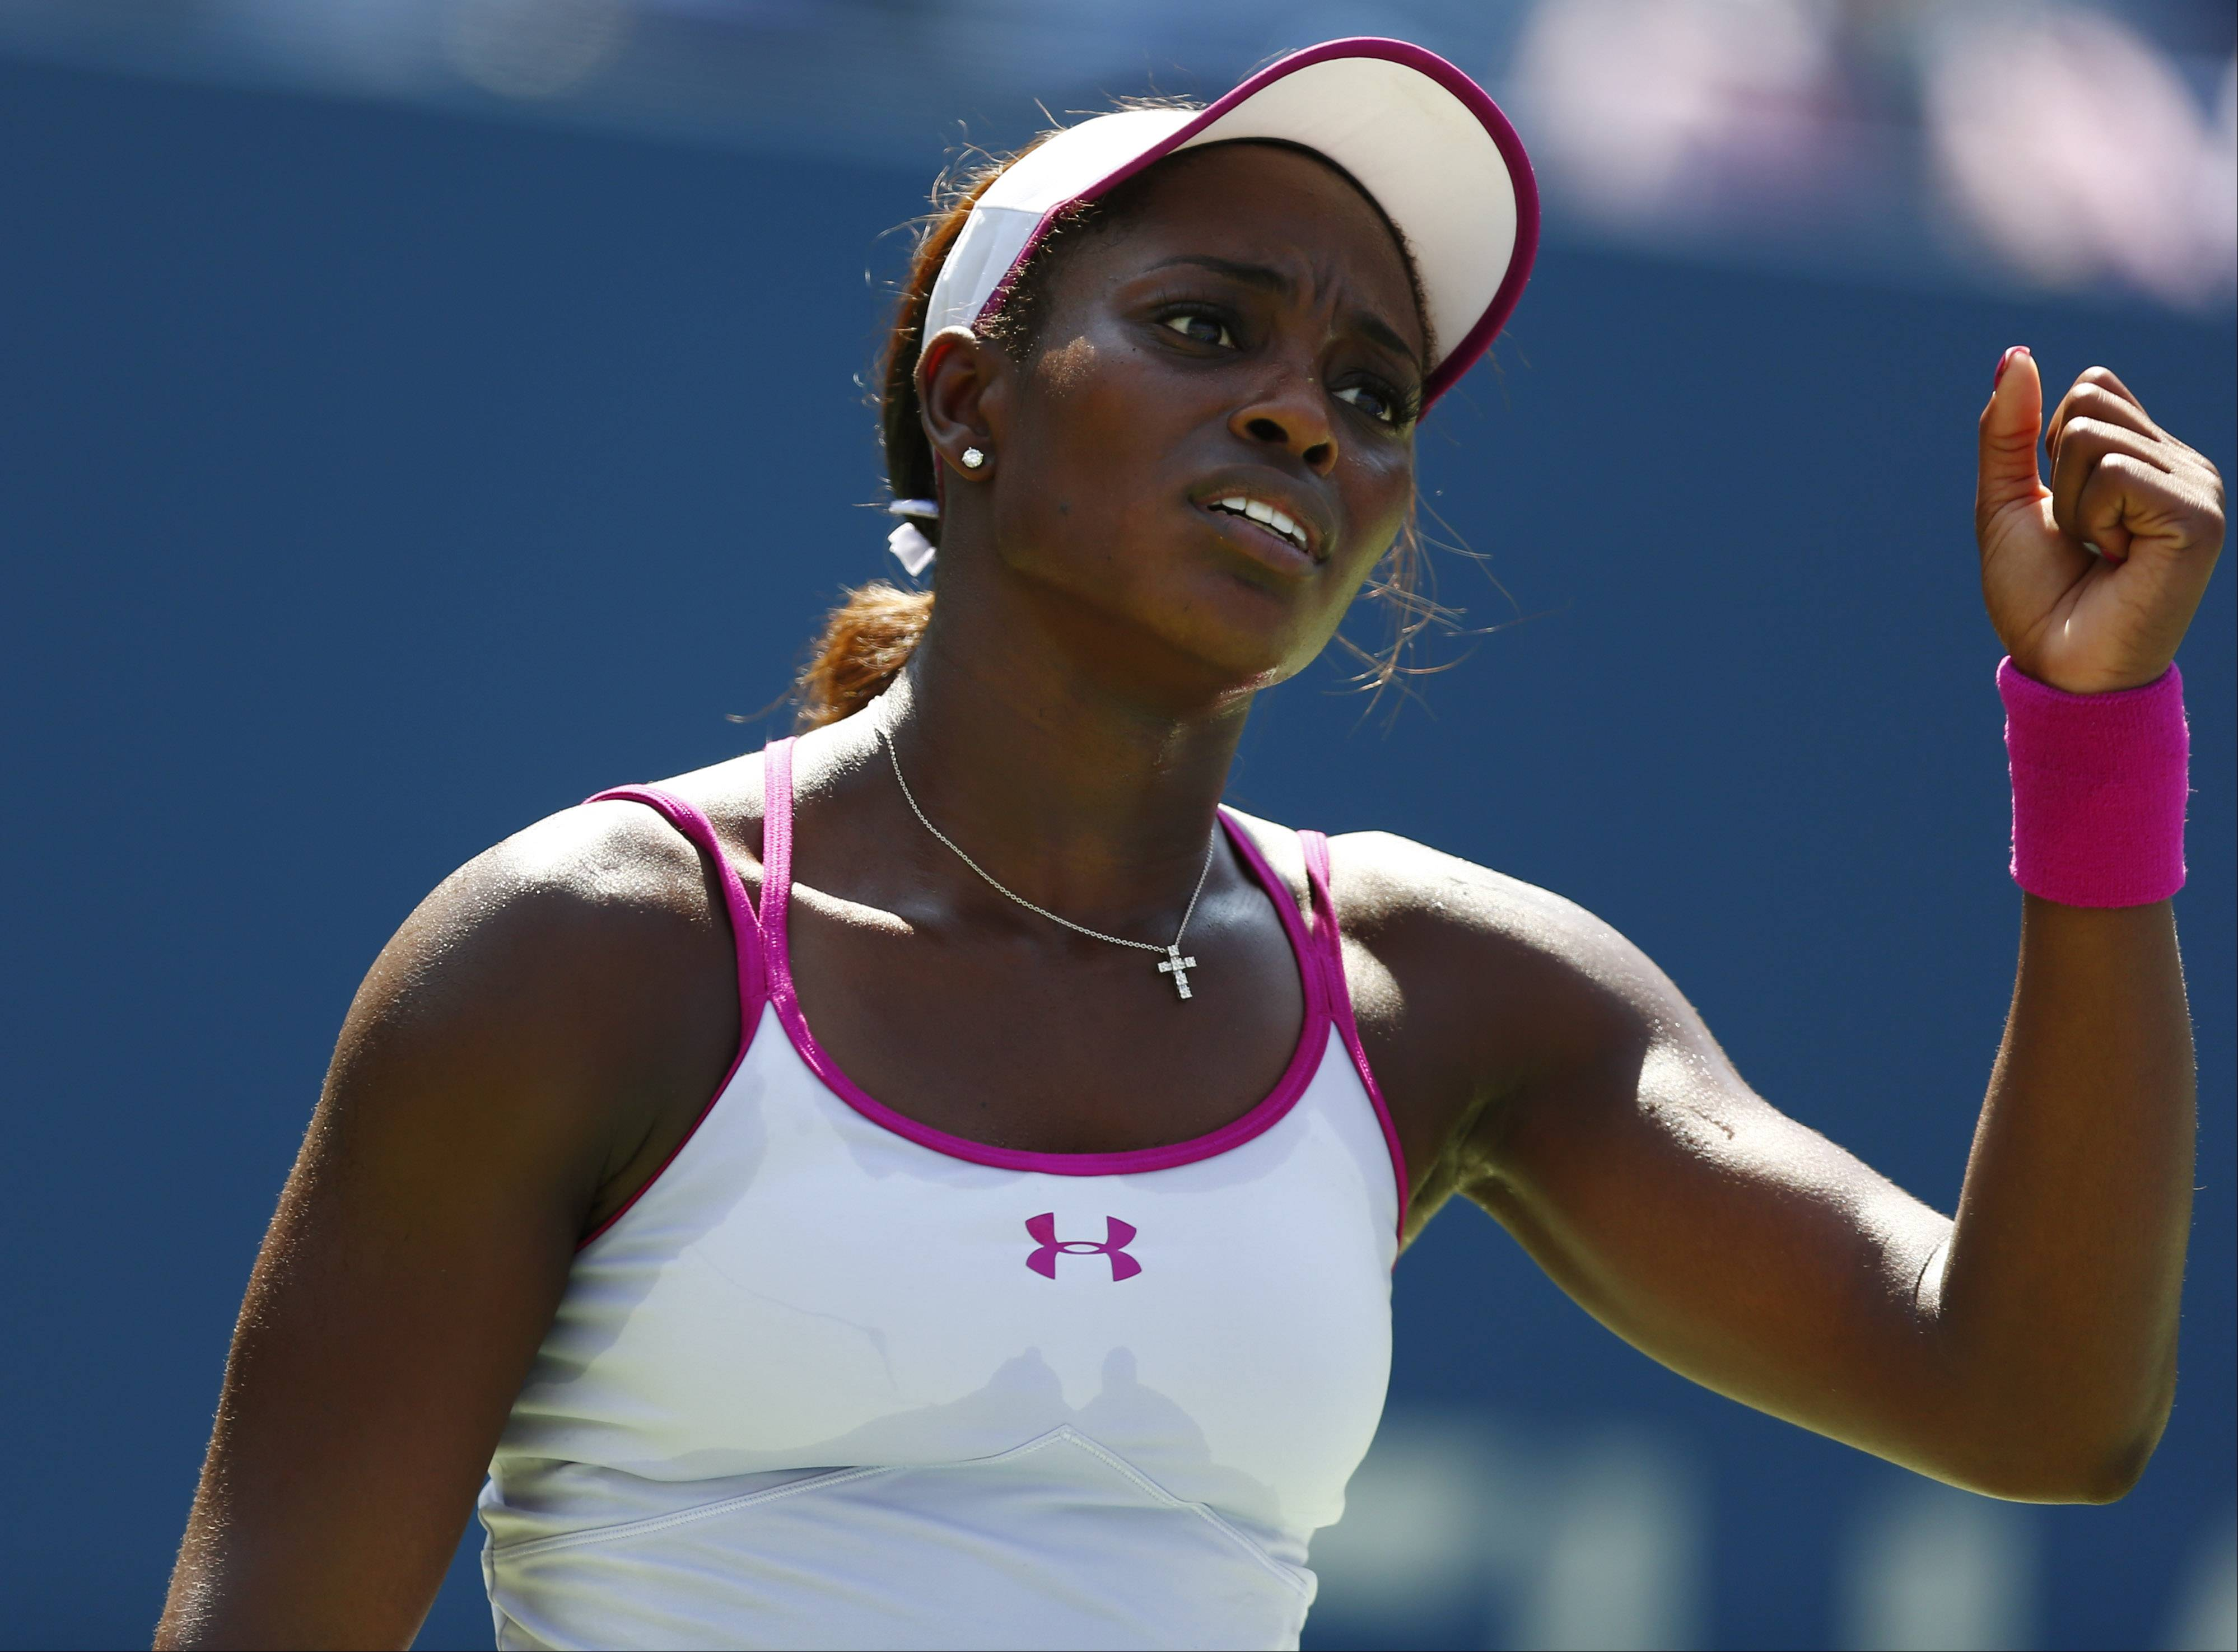 Sloane Stephens, of the United States, reacts after a point against Johanna Larsson, of Sweden, during the second round of the 2014 U.S. Open tennis tournament, Wednesday, Aug. 27, 2014, in New York. (AP Photo/Matt Rourke)